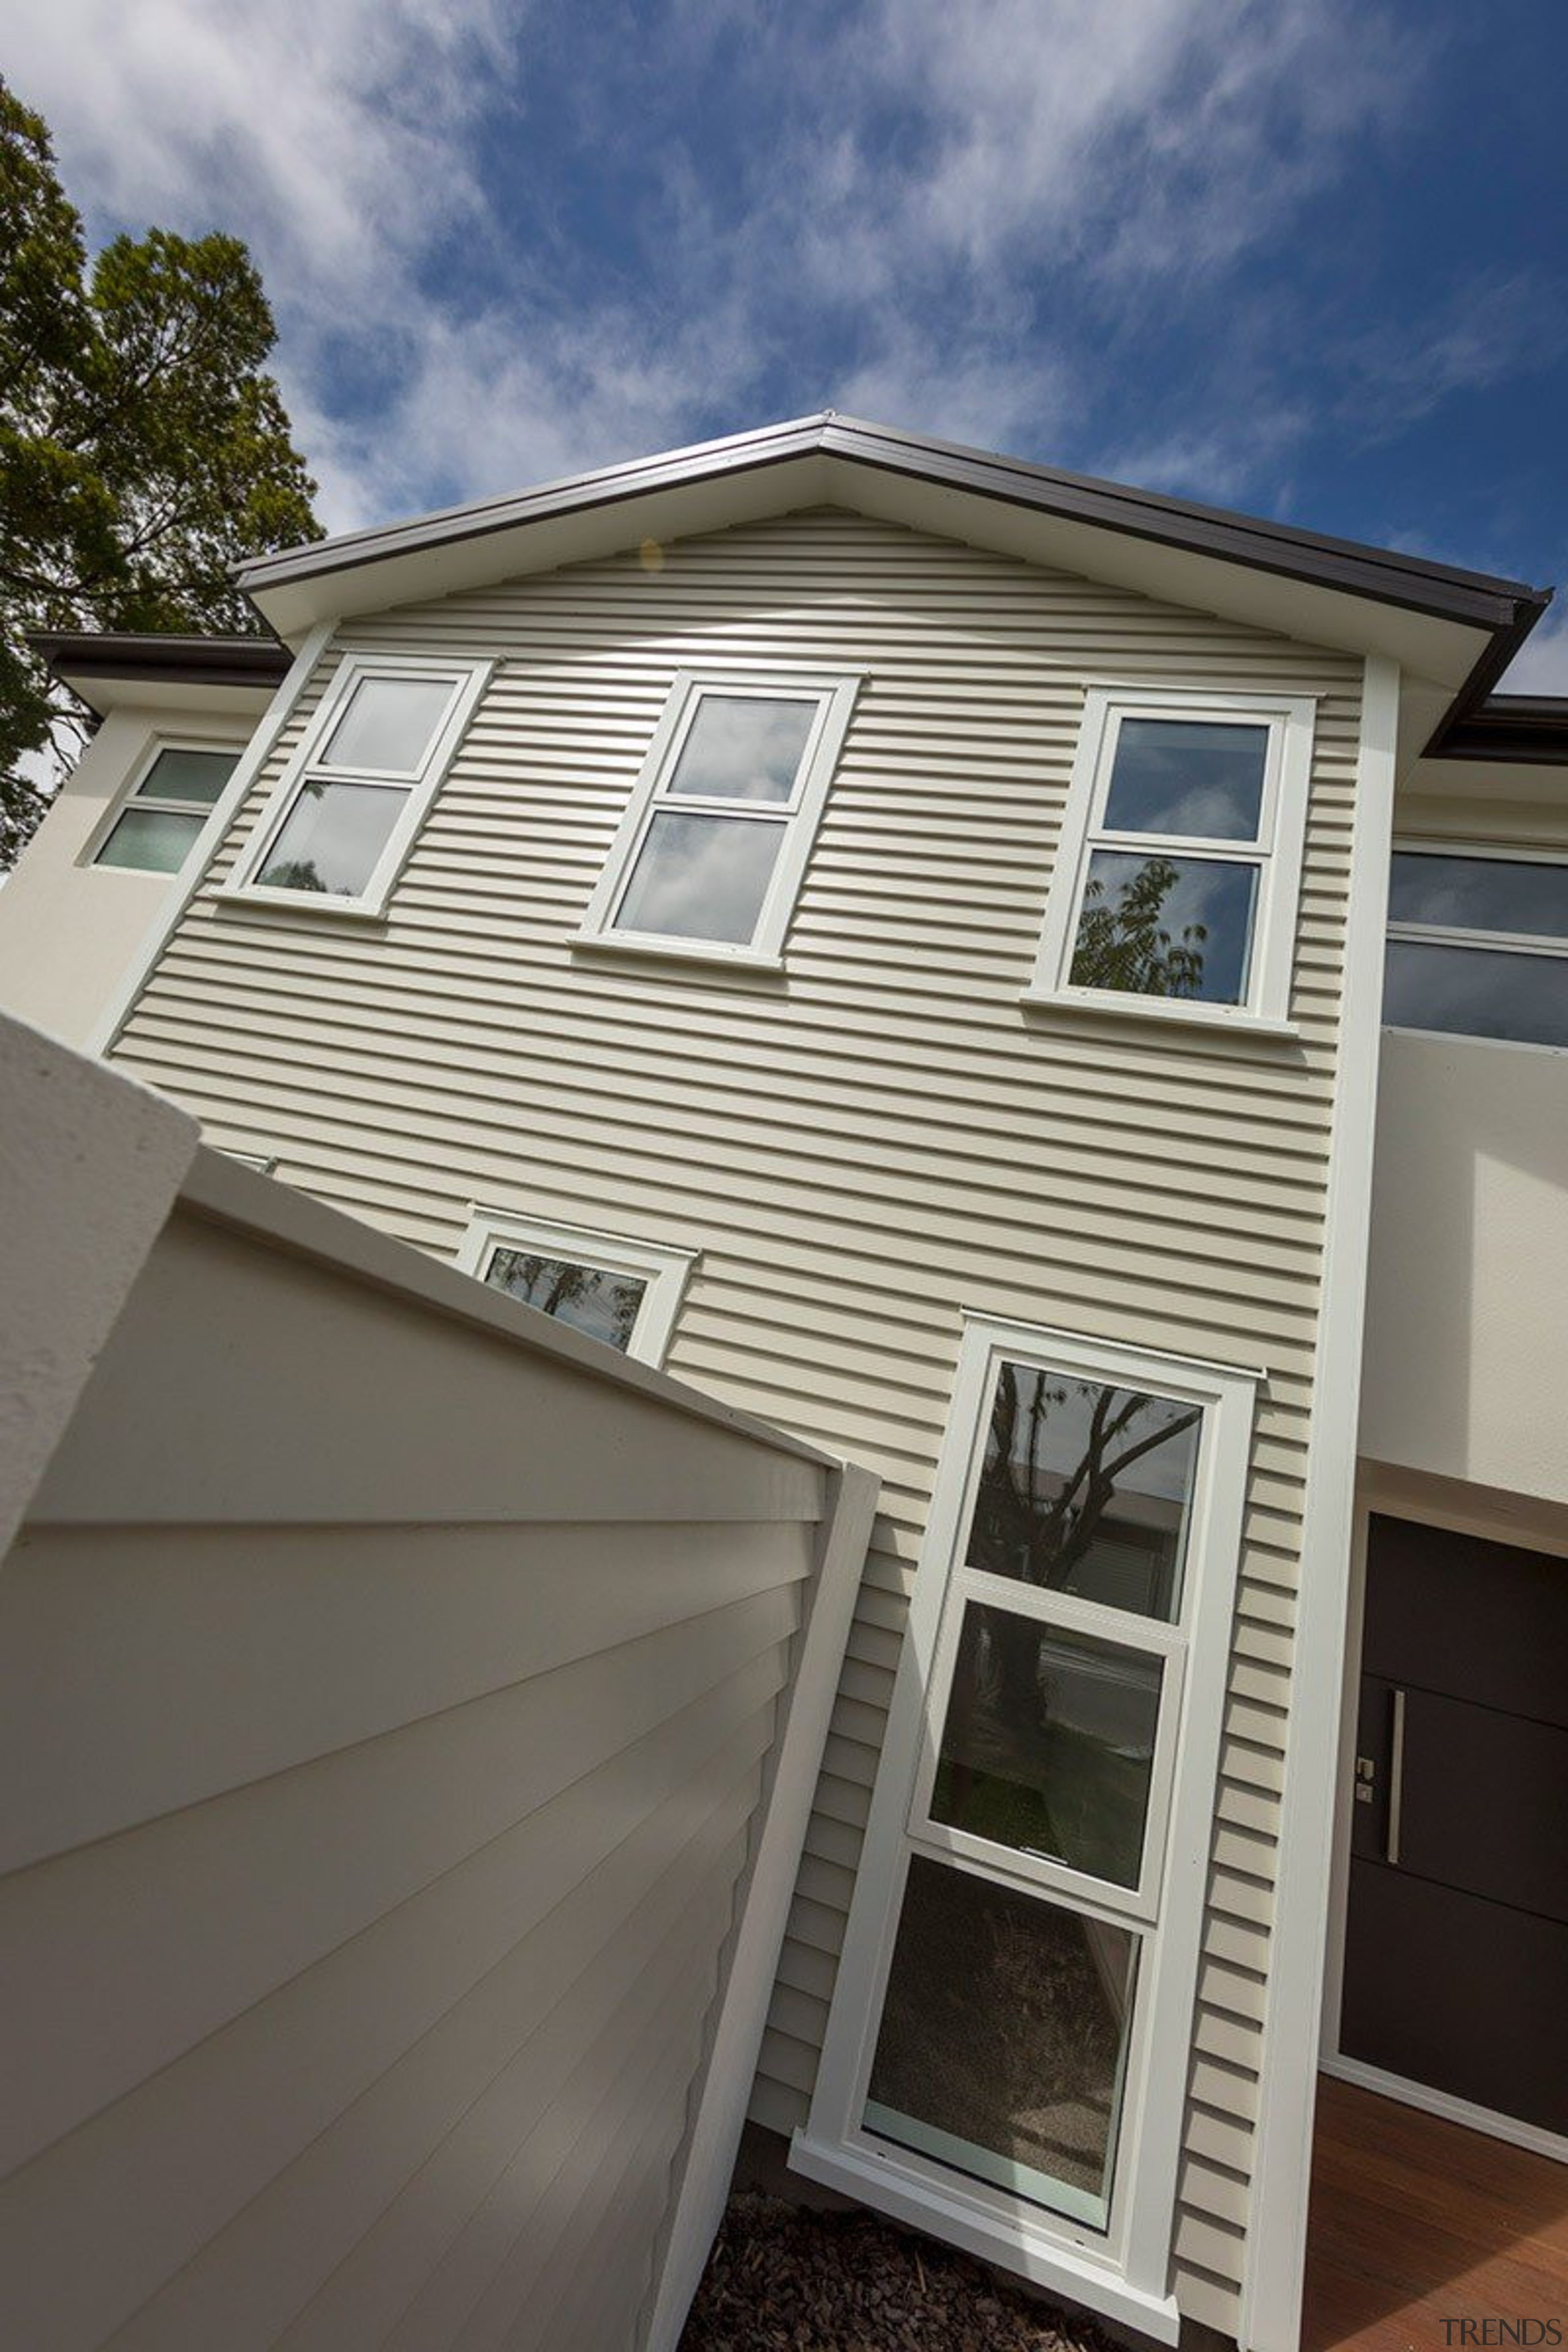 Three styles of weatherboards are offered in the building, daylighting, elevation, facade, home, house, property, real estate, residential area, roof, siding, window, gray